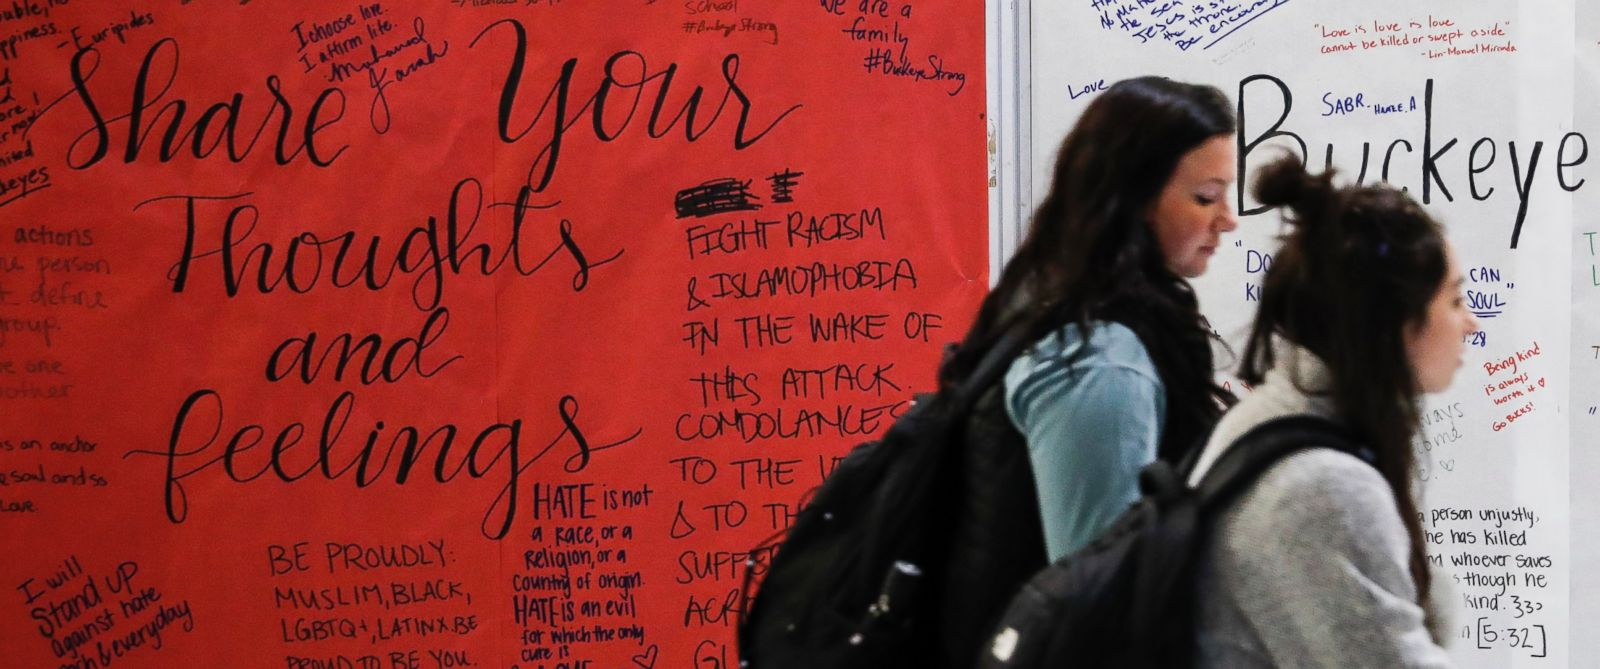 PHOTO: Students walk past a message board covered in community reactions at the Ohio State University student union, Nov. 29, 2016.